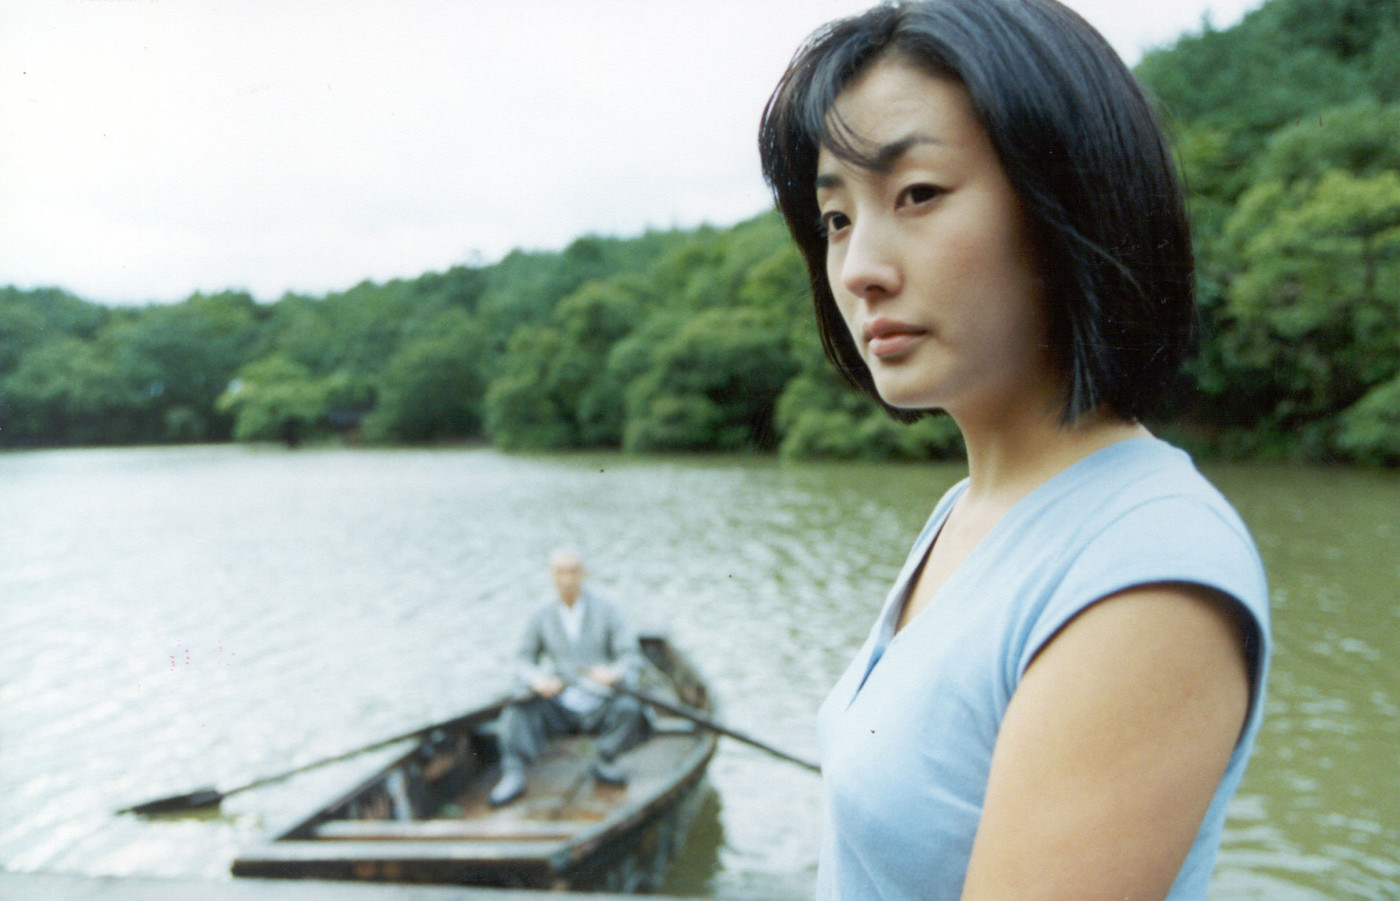 Left (rear) to right: OH Young-soo as Old Monk, HA Yeo-jin as The Girl; Photo by KIM Tae-hwan and LEE Sung-jin